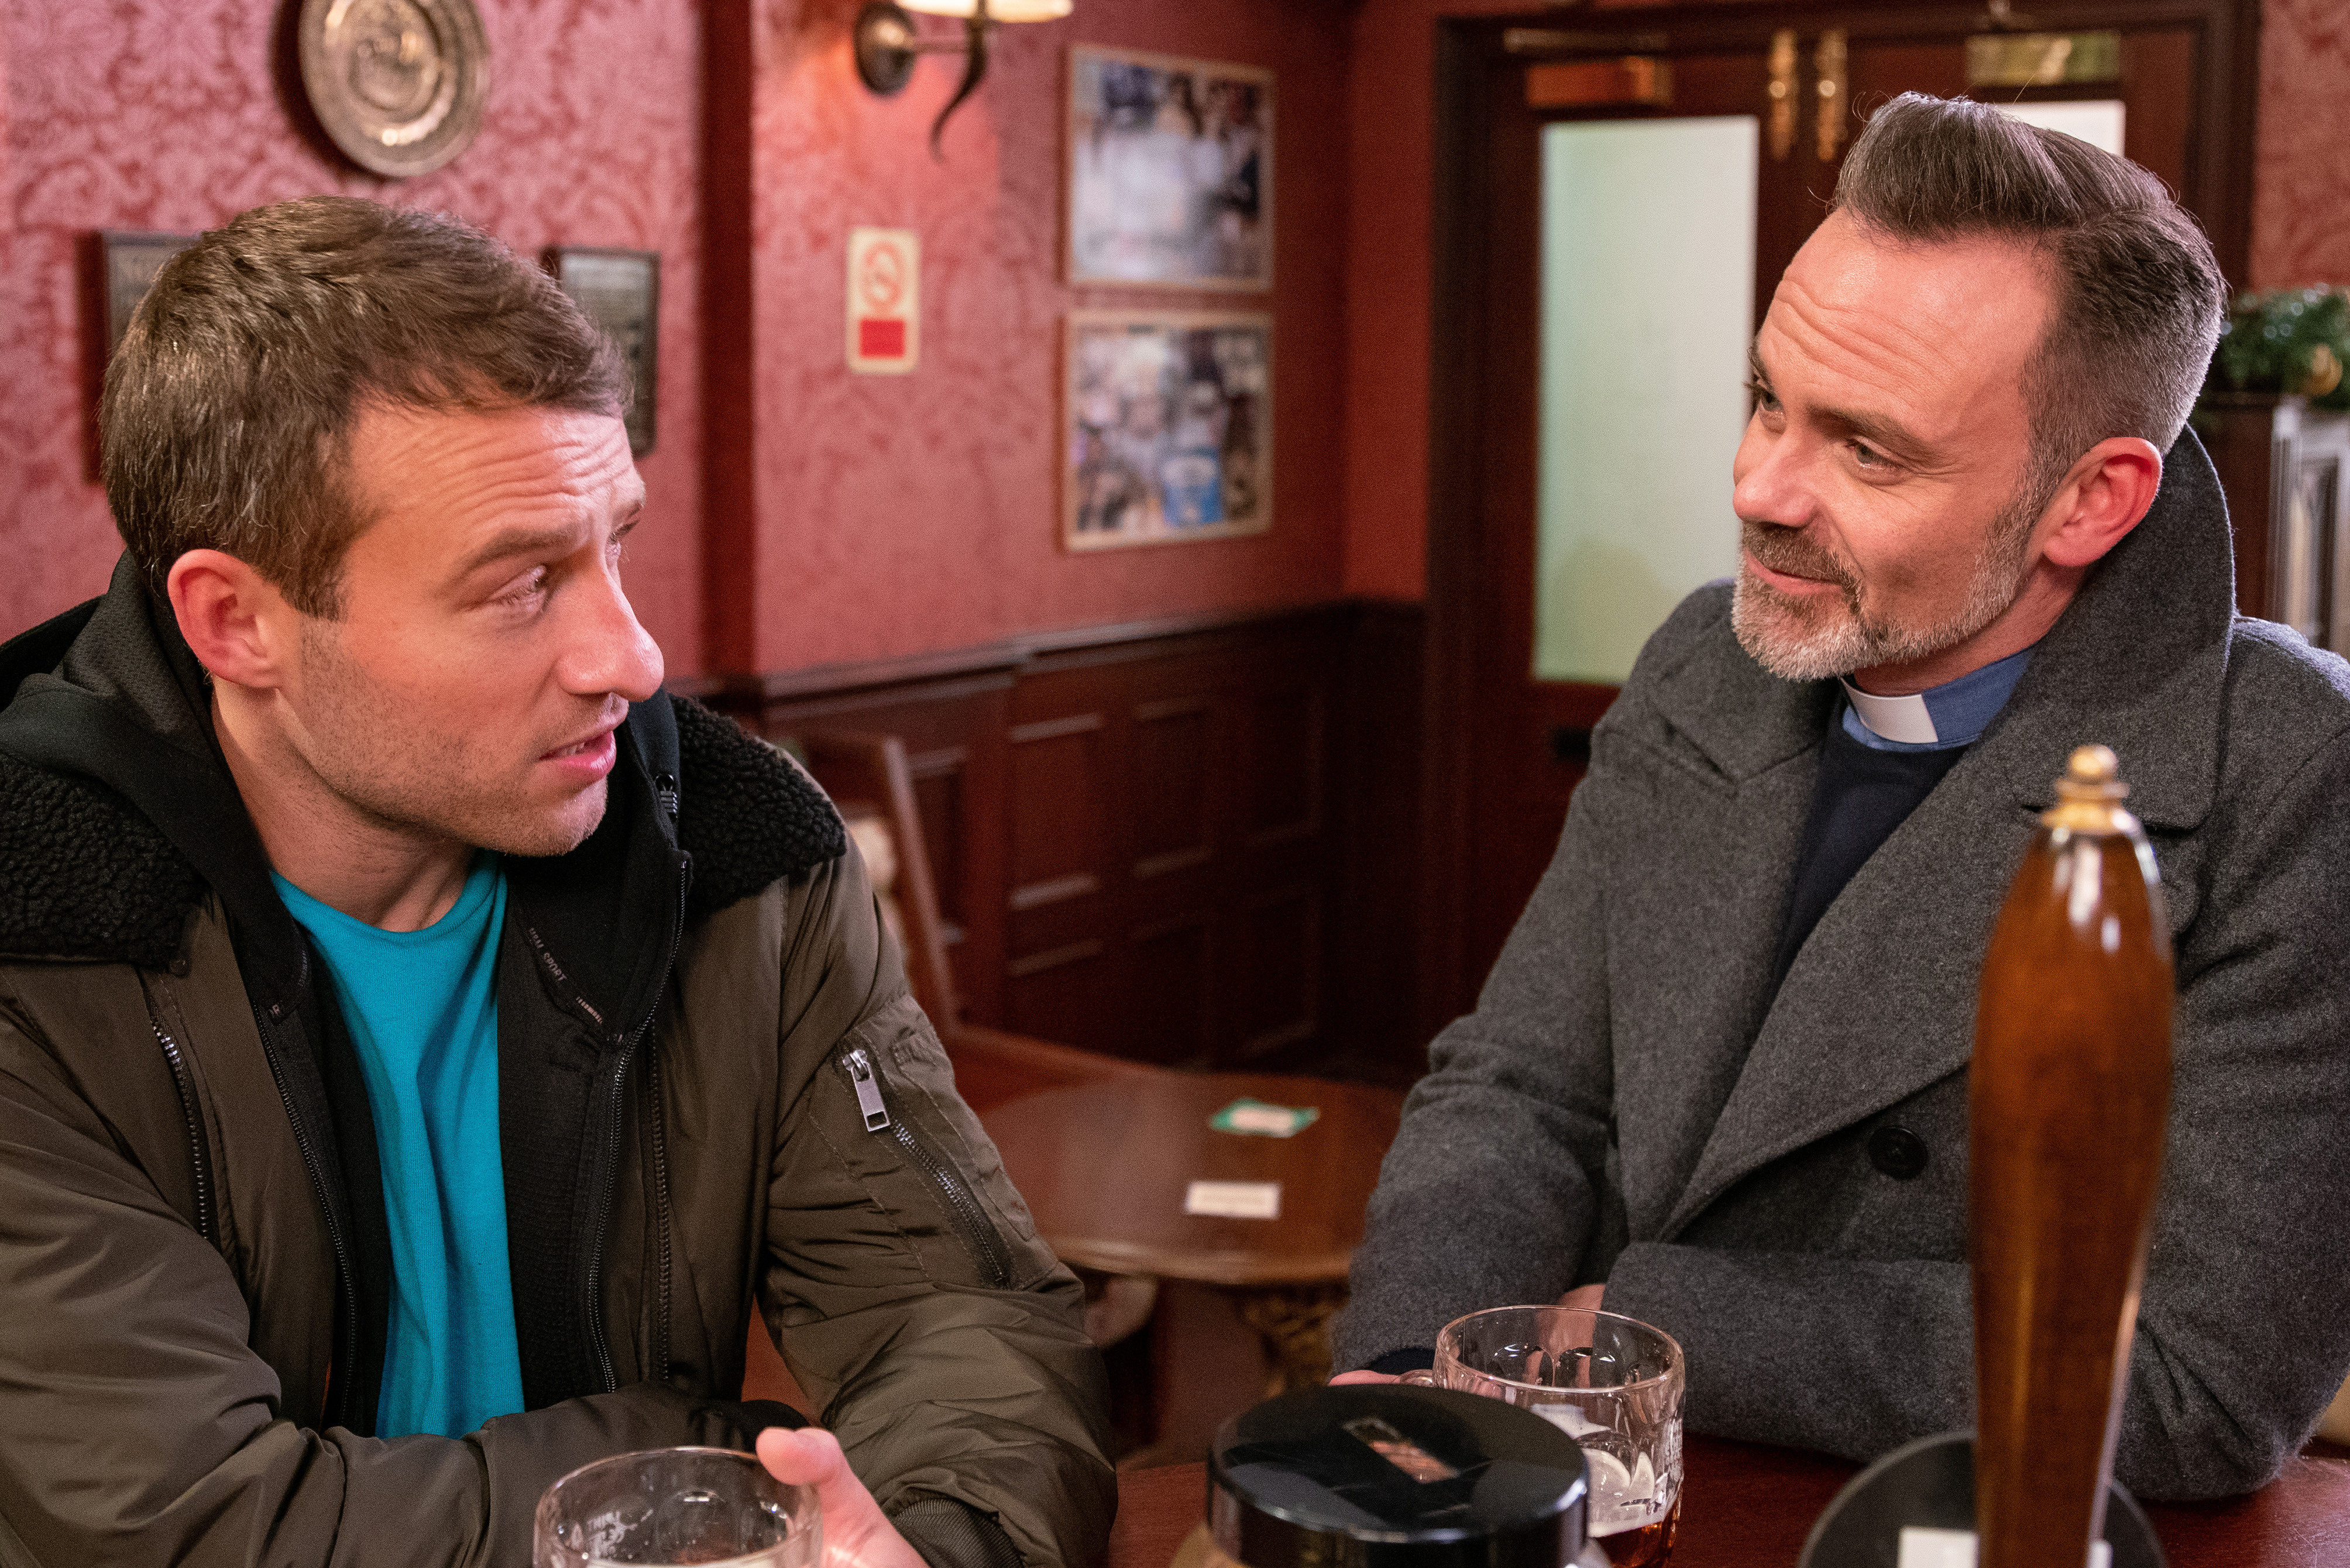 Coronation Street spoilers: Shock new love interest revealed for Billy Mayhew as he commences 'sexy' relationship